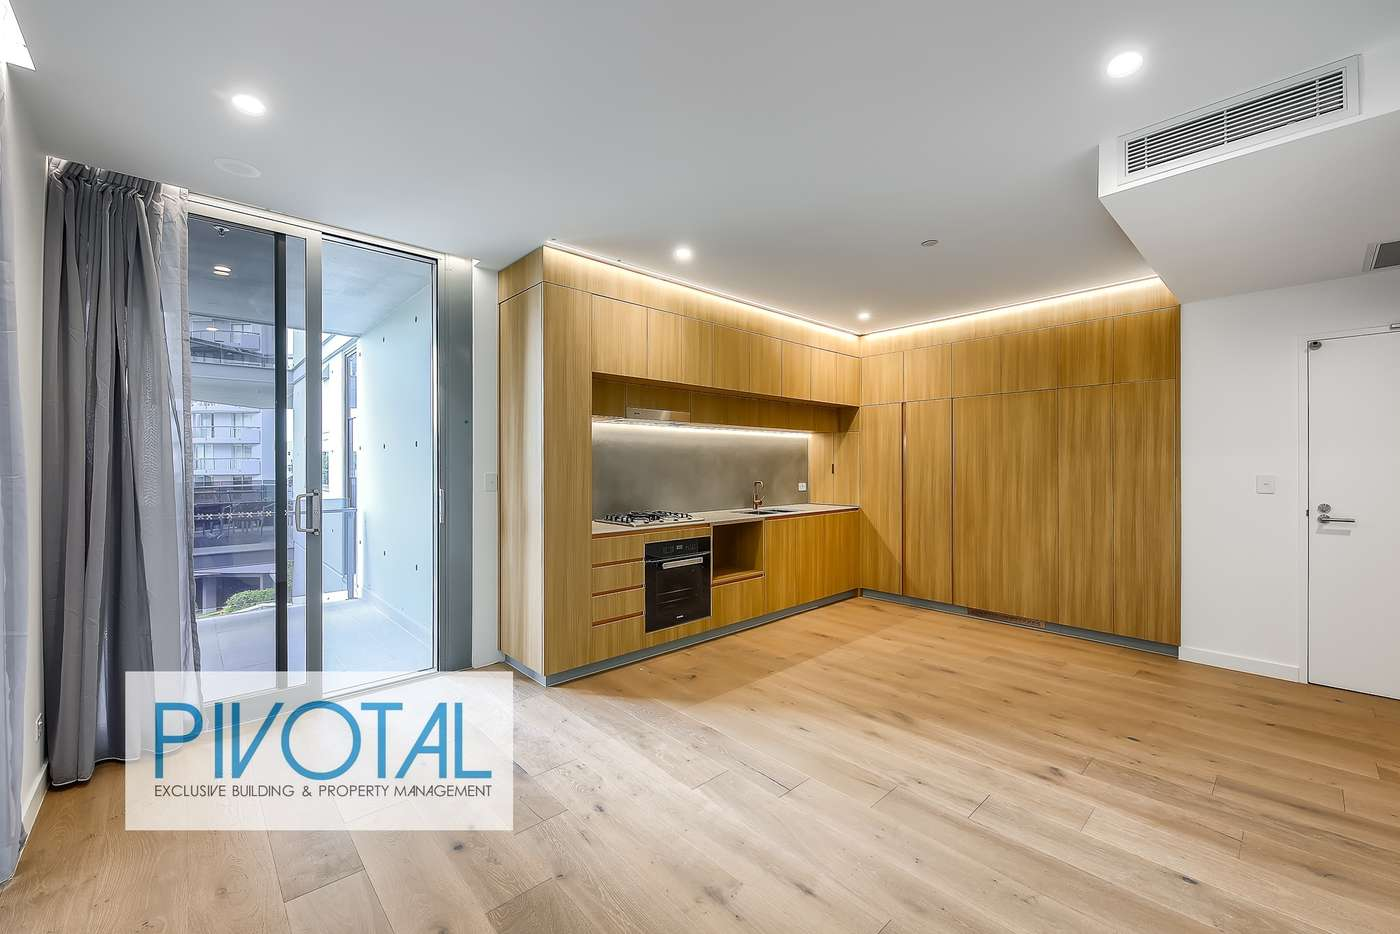 Main view of Homely apartment listing, 3301/59 O'Connell St, Kangaroo Point QLD 4169